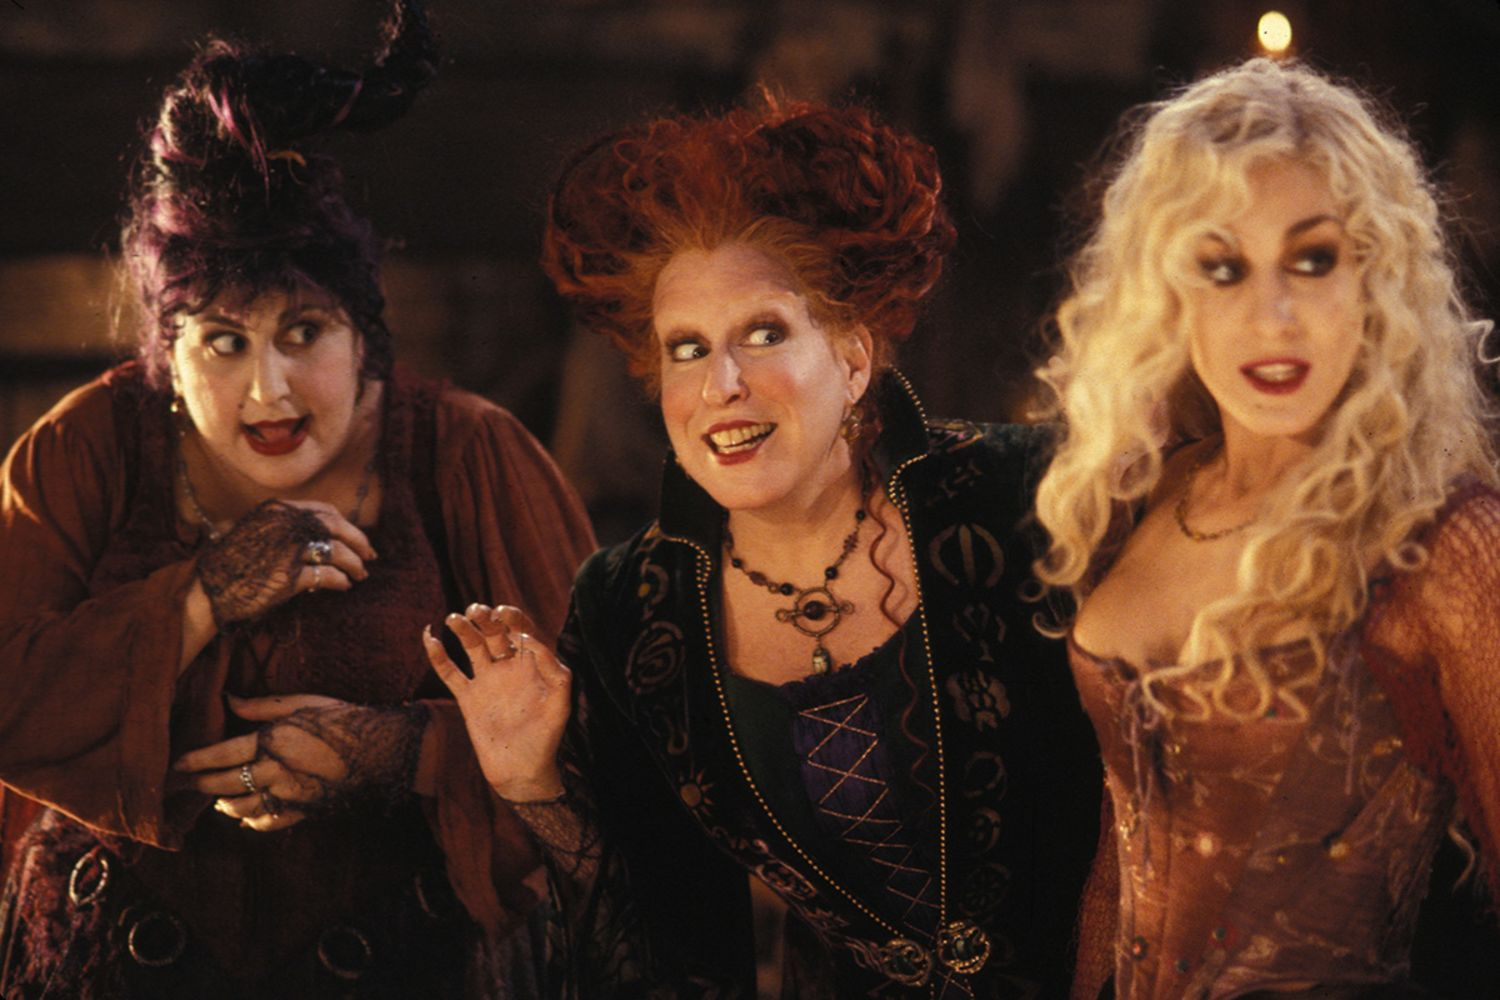 Freeform's 31 Nights of Halloween Includes a Special that Celebrates 'Hocus Pocus'